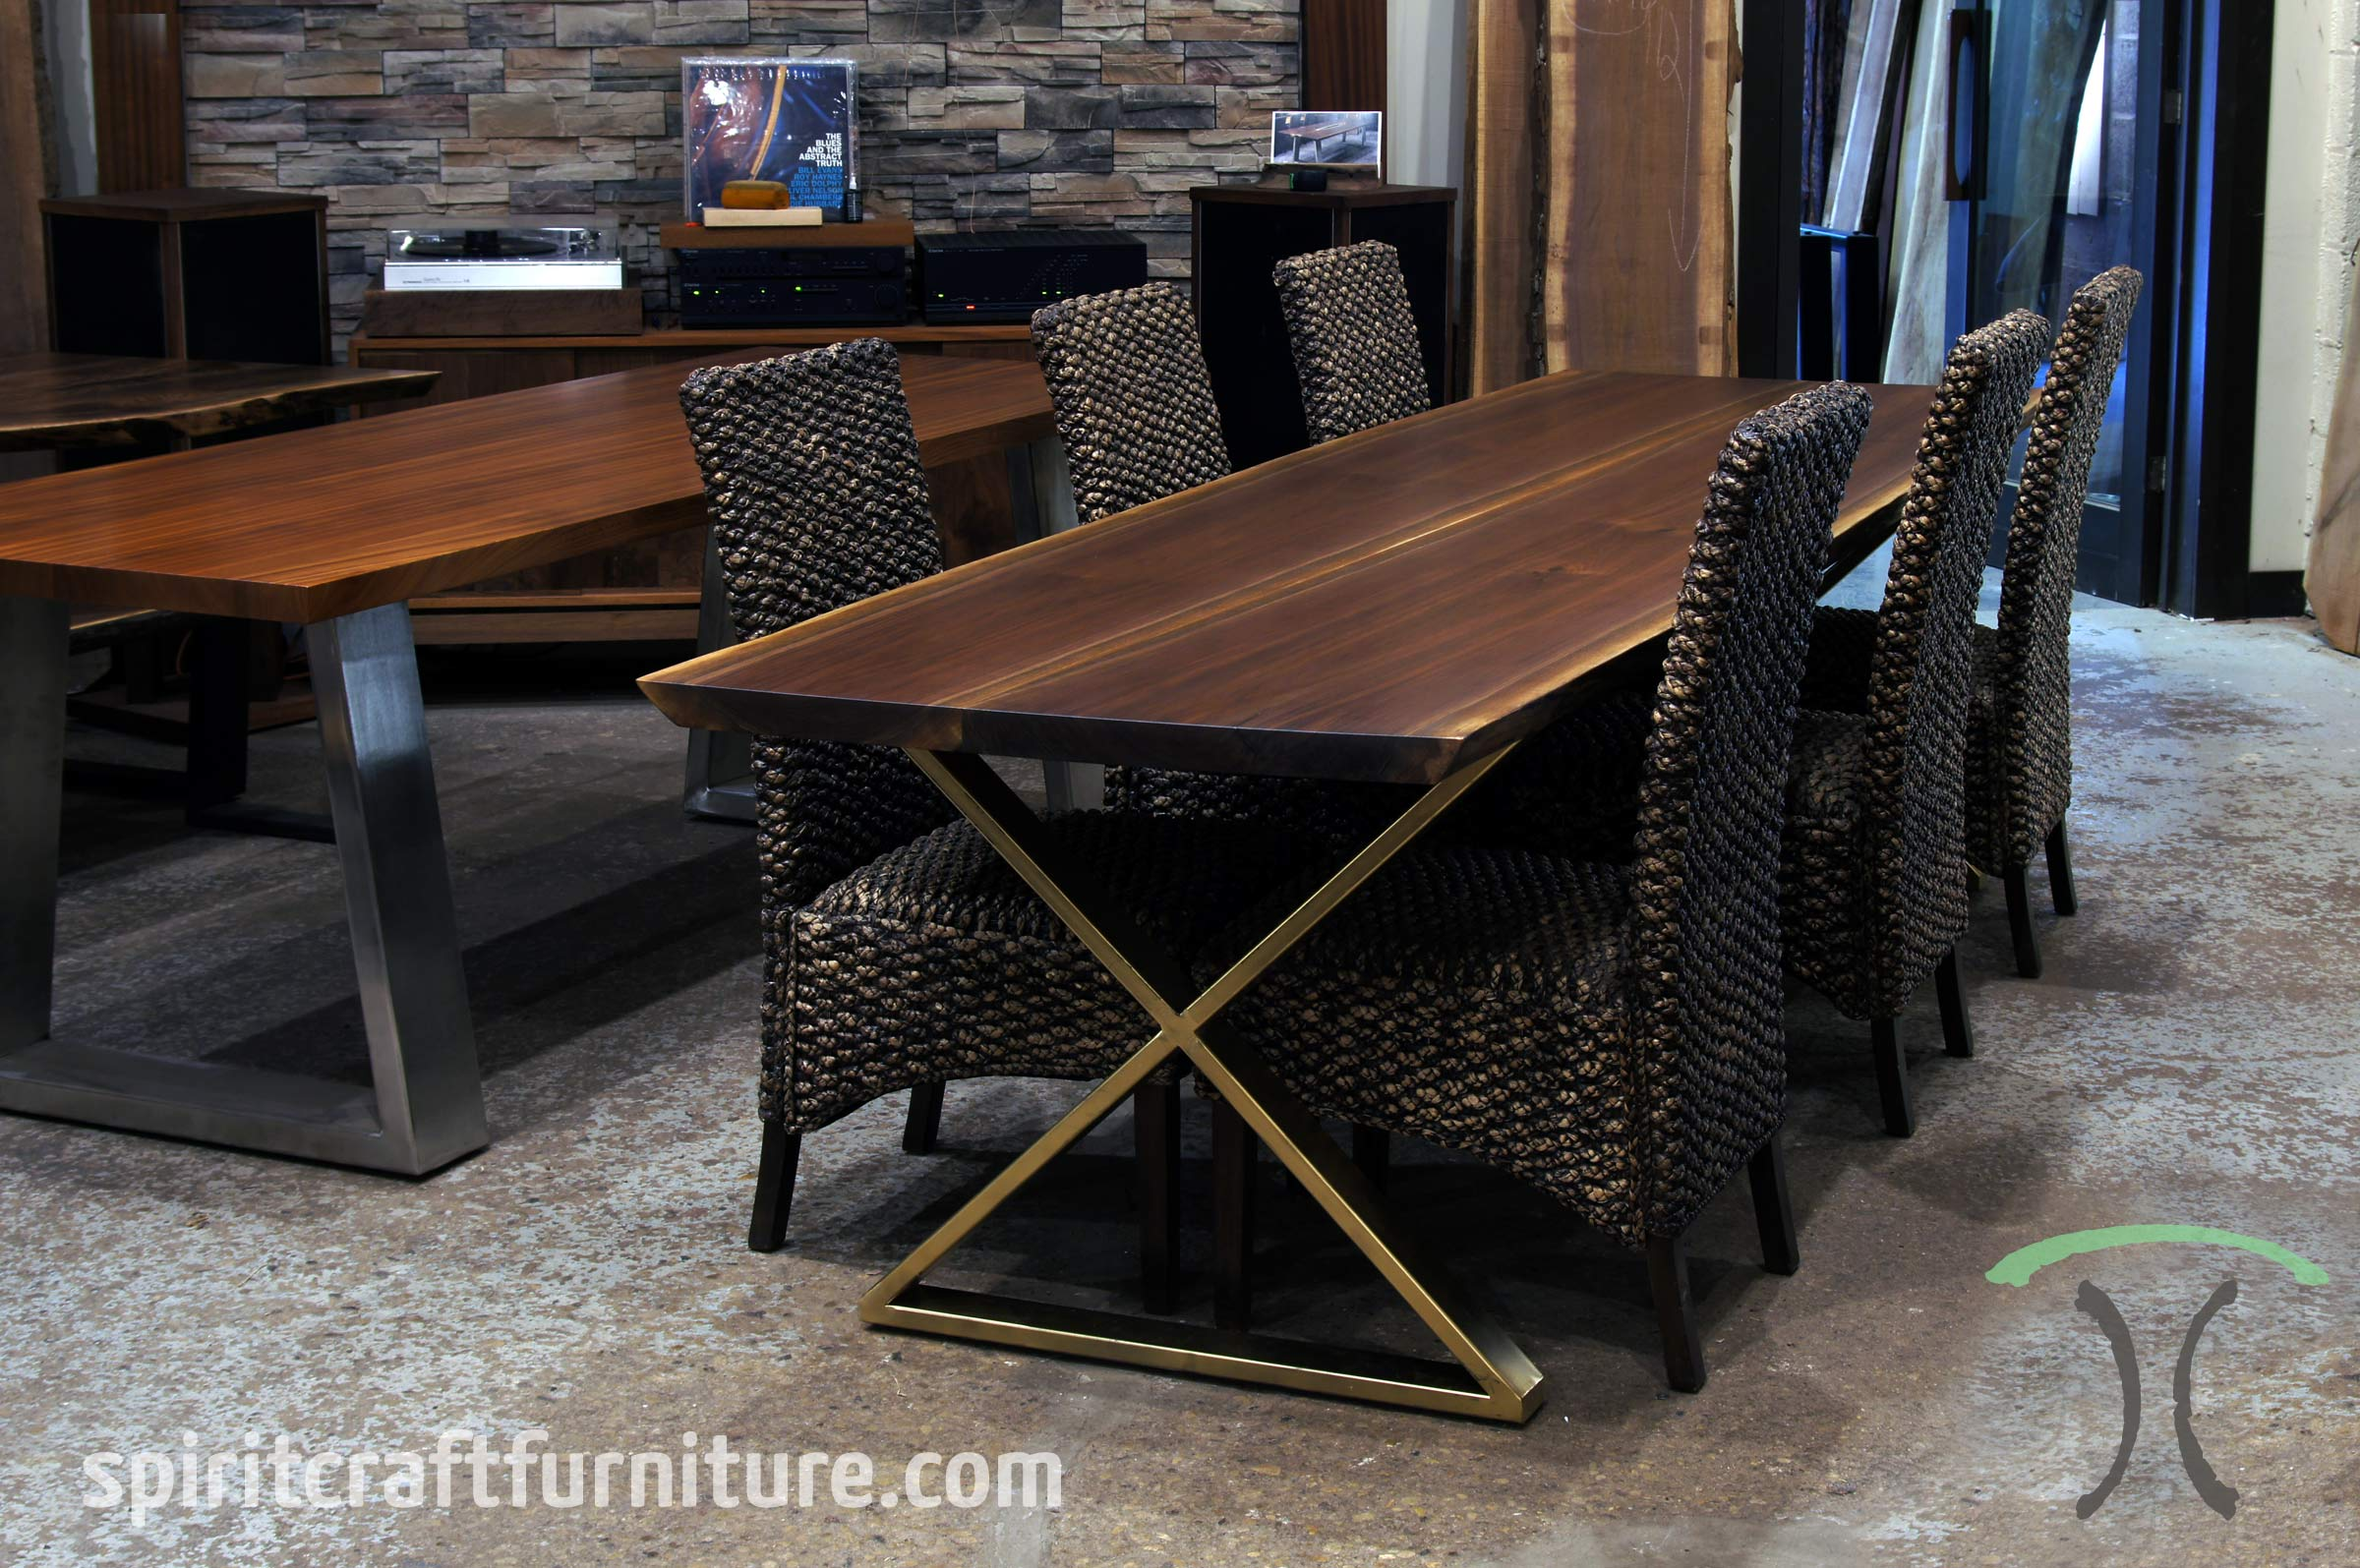 Live edge dining or conference table in solid Black Walnut on crossed gold legs, displayed at our retail slab furniture store in Chicago area, East Dundee, Illinois